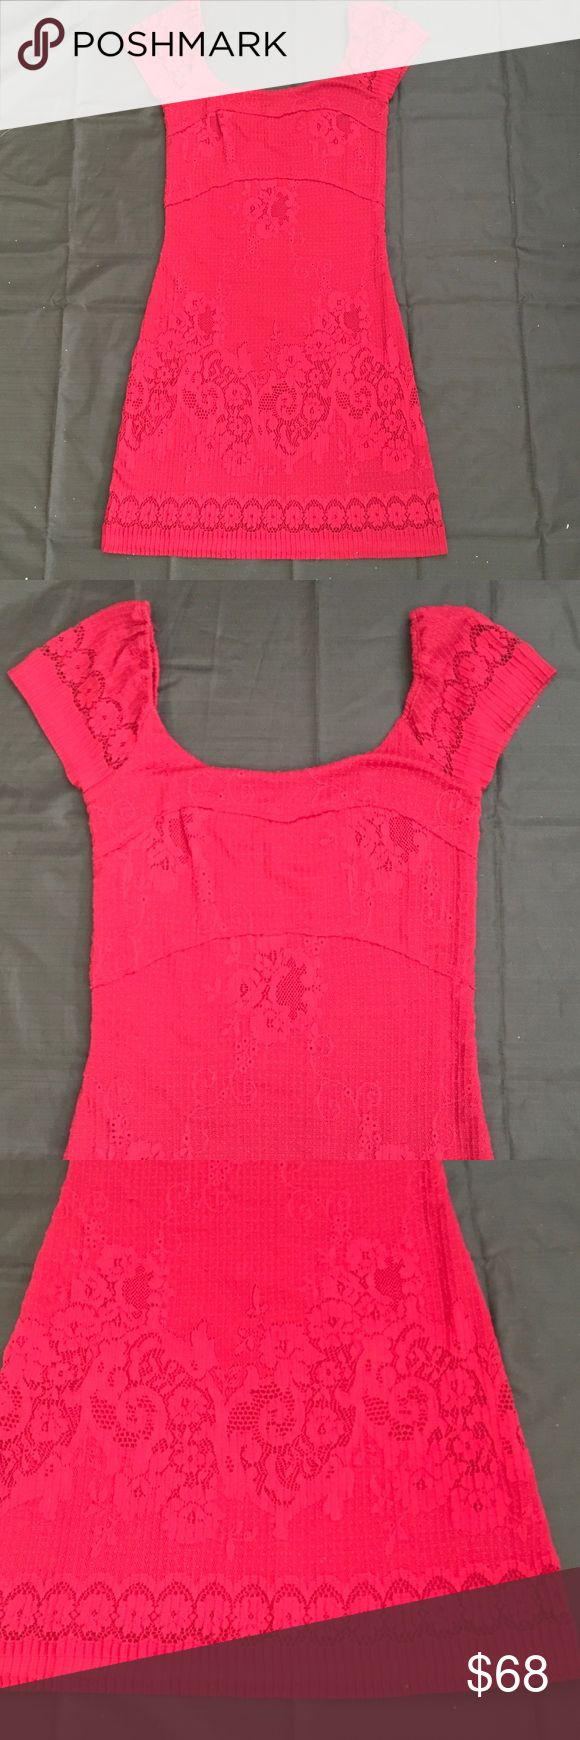 "Free People Red Cap Sleeve Bodycon Lace Dress S Condition: Worn once  🎀Color: Red  🎀Lace detailing  🎀Cap Sleeve  🎀Bust 30""  🎀Waist 28"" 🎀Length 35"" Free People Dresses Mini"